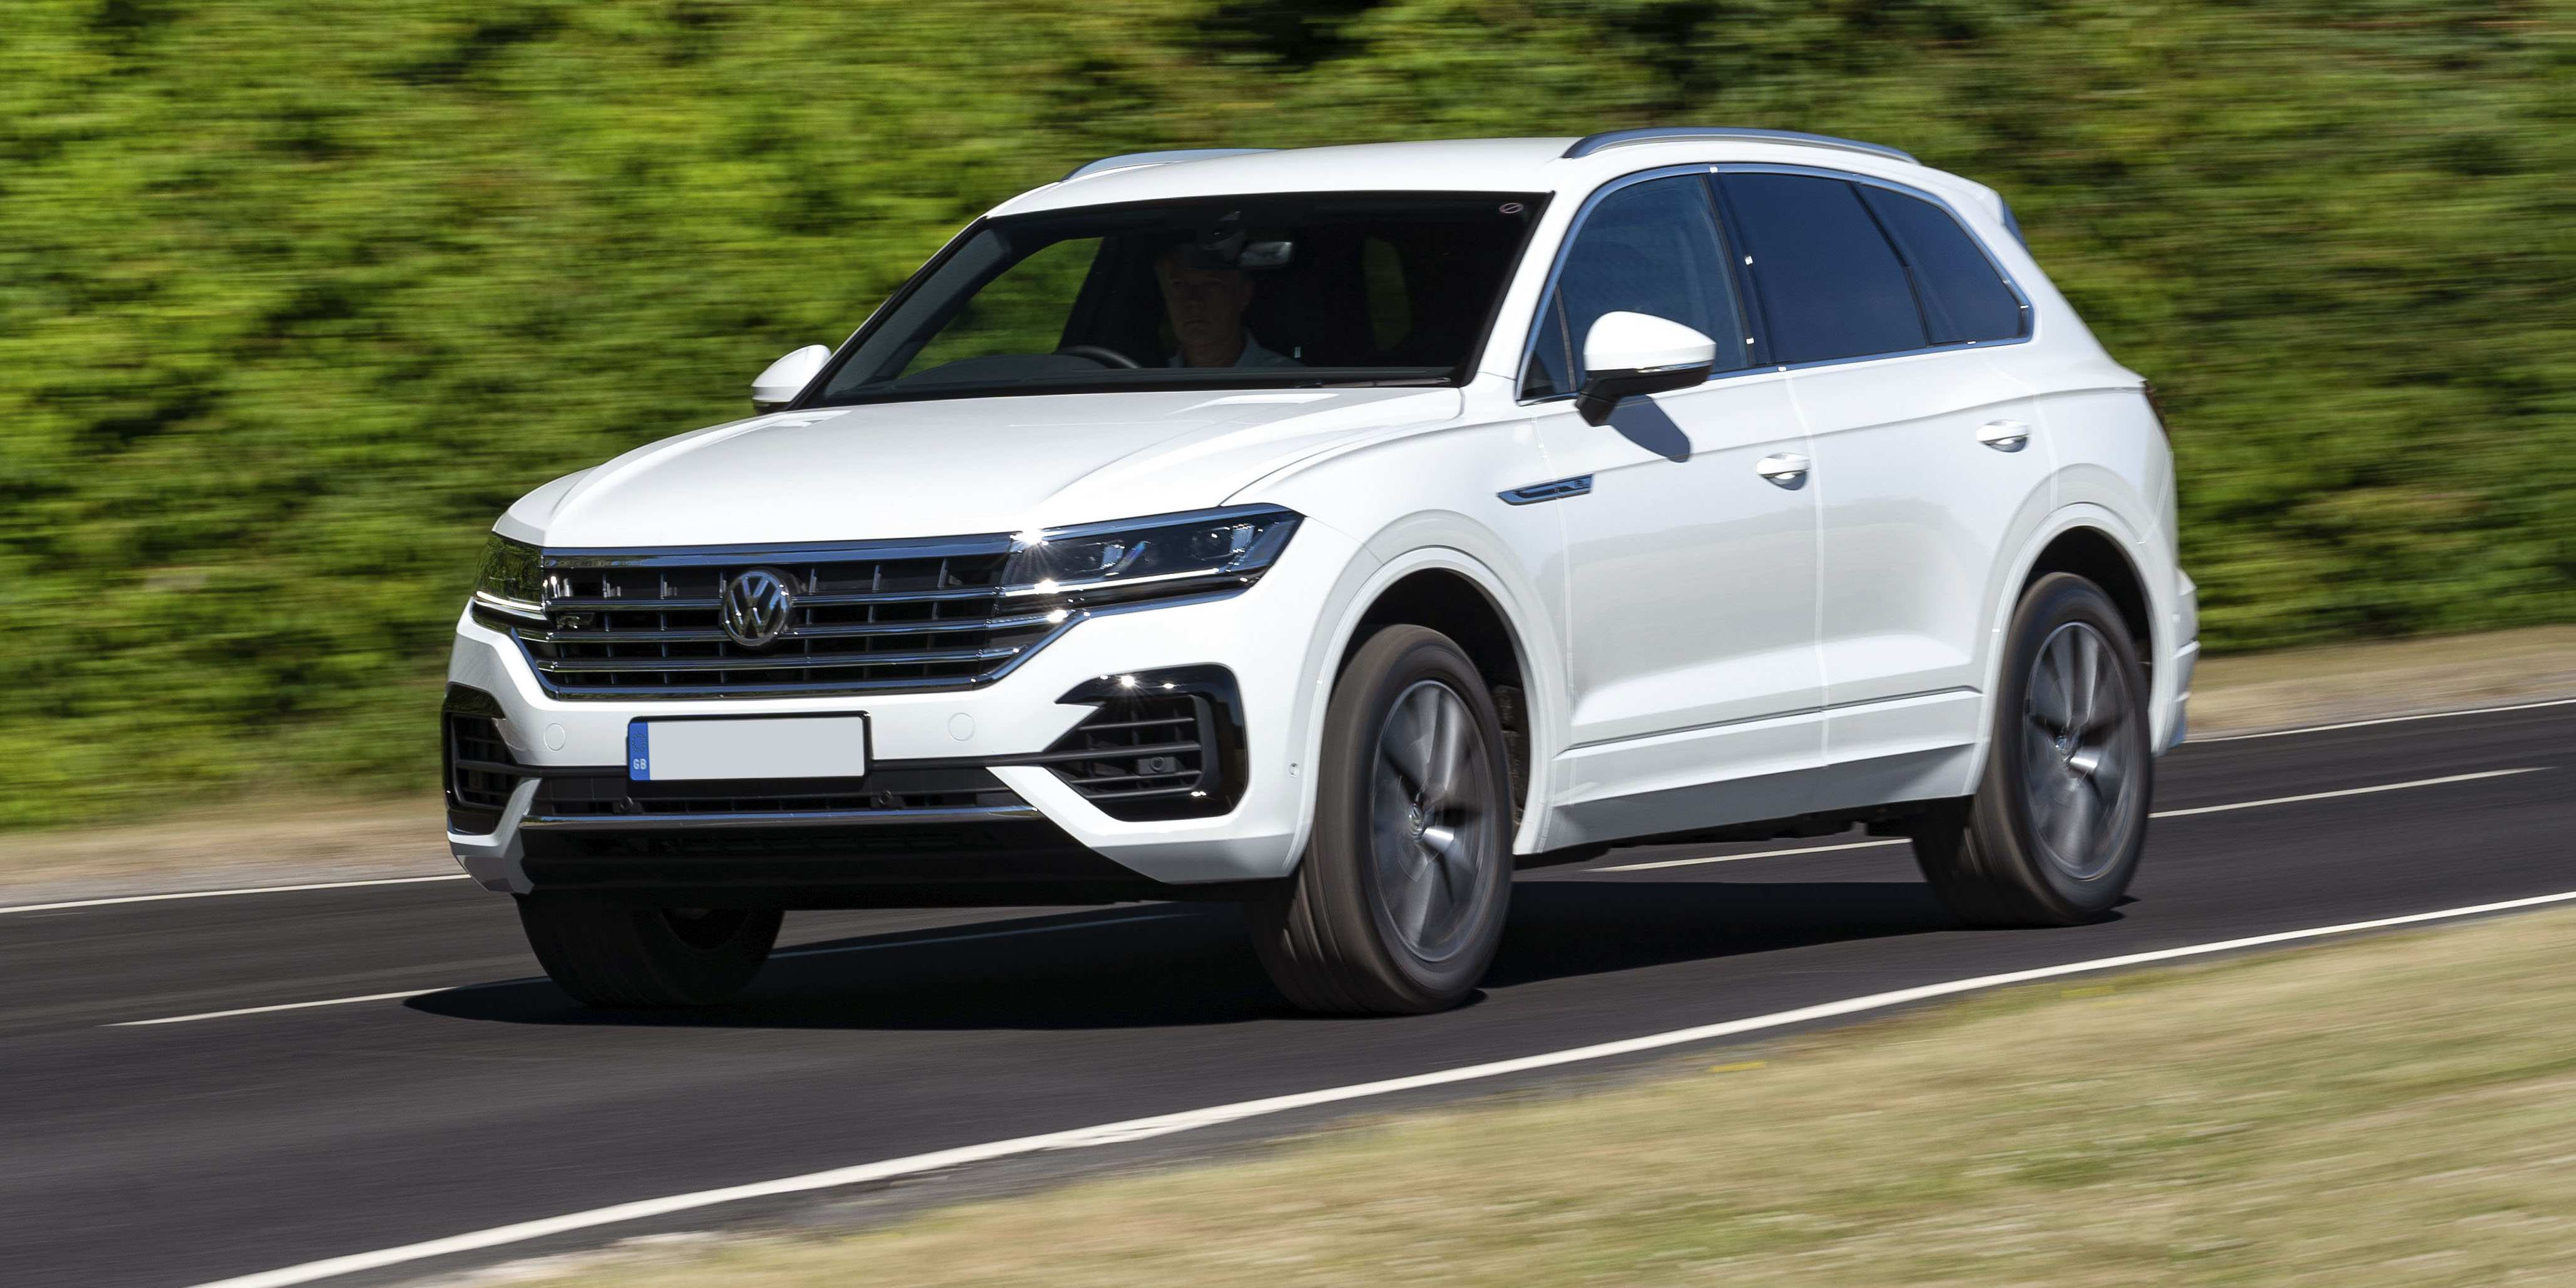 55 Gallery of The Volkswagen Touareg 2019 India Release Date Overview for The Volkswagen Touareg 2019 India Release Date